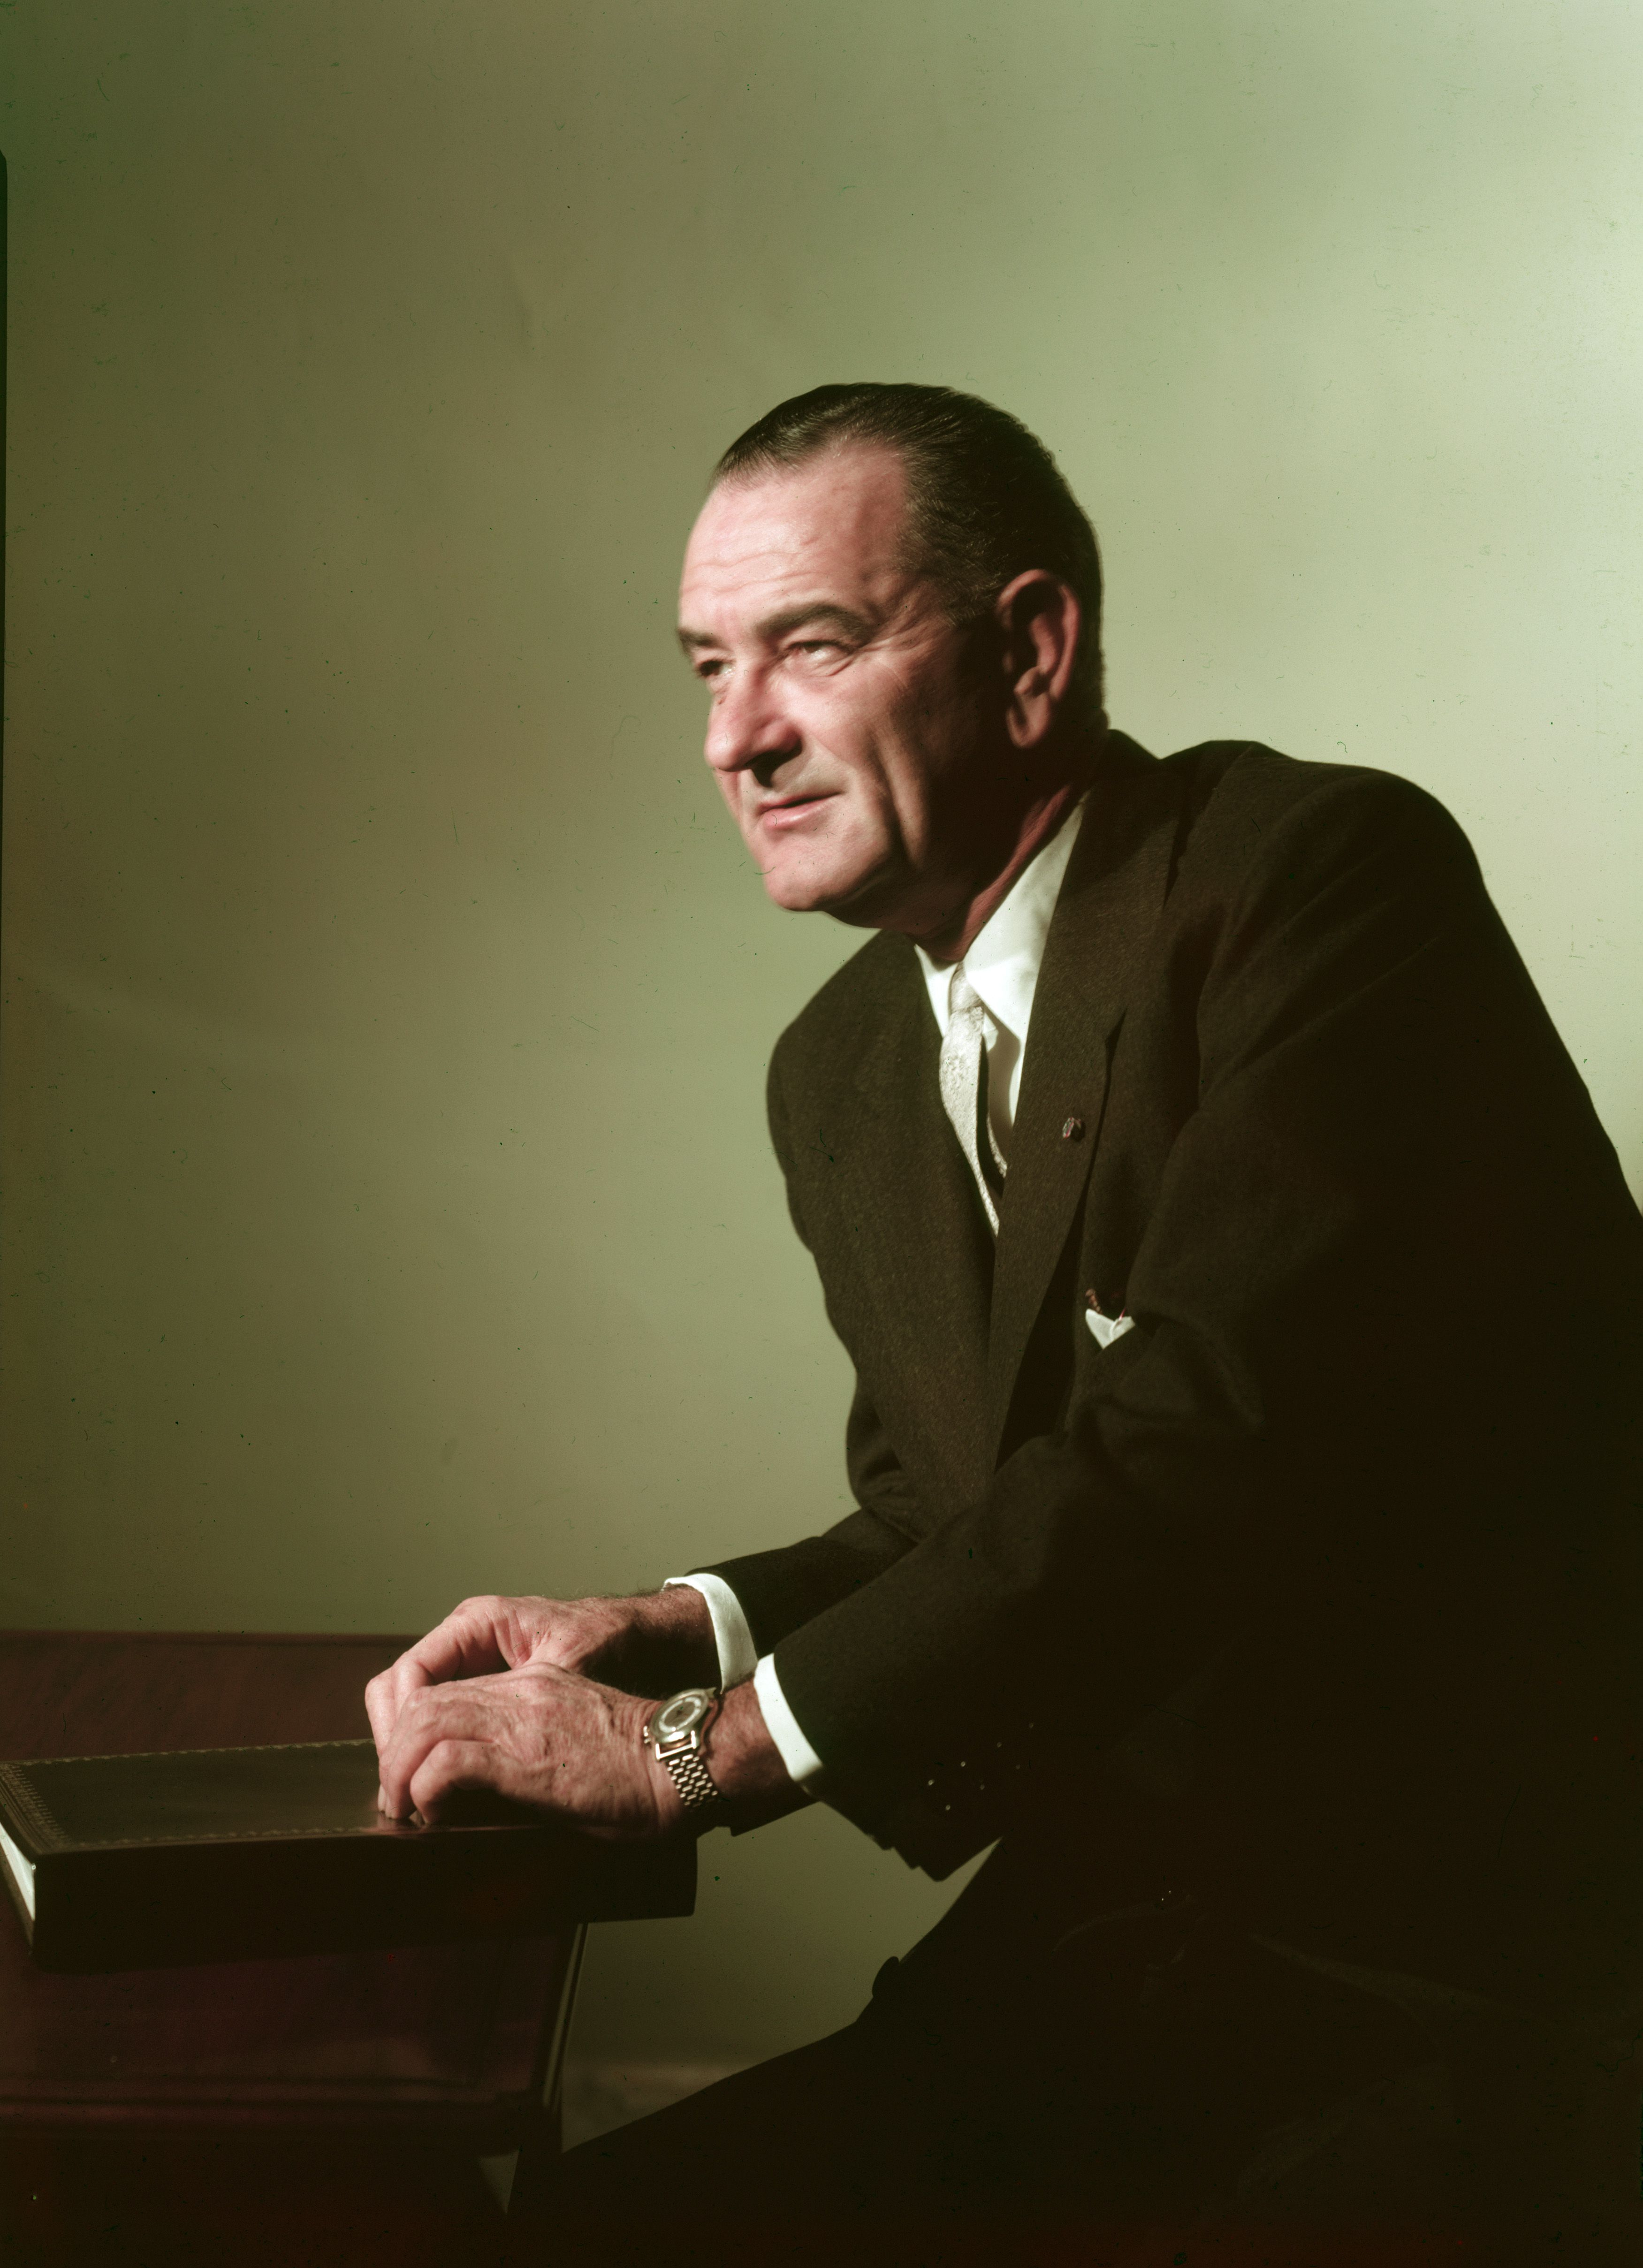 the life and impact of lyndon b johnson the 36th president of the united states of america